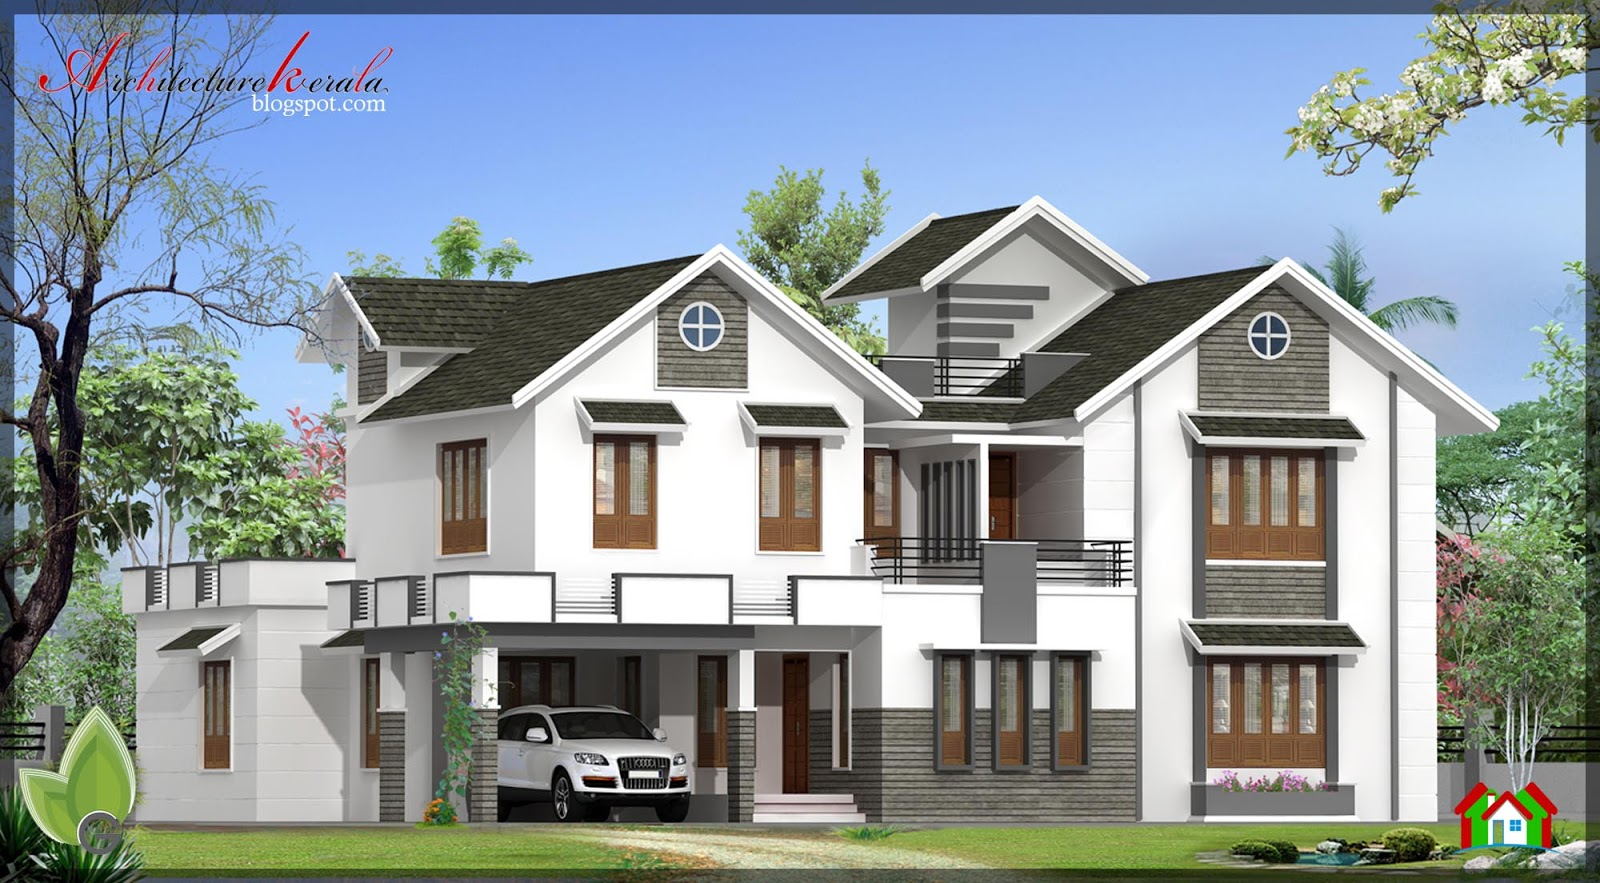 3000 sq ft house elevation architecture kerala for 3000 sq ft house plans kerala style